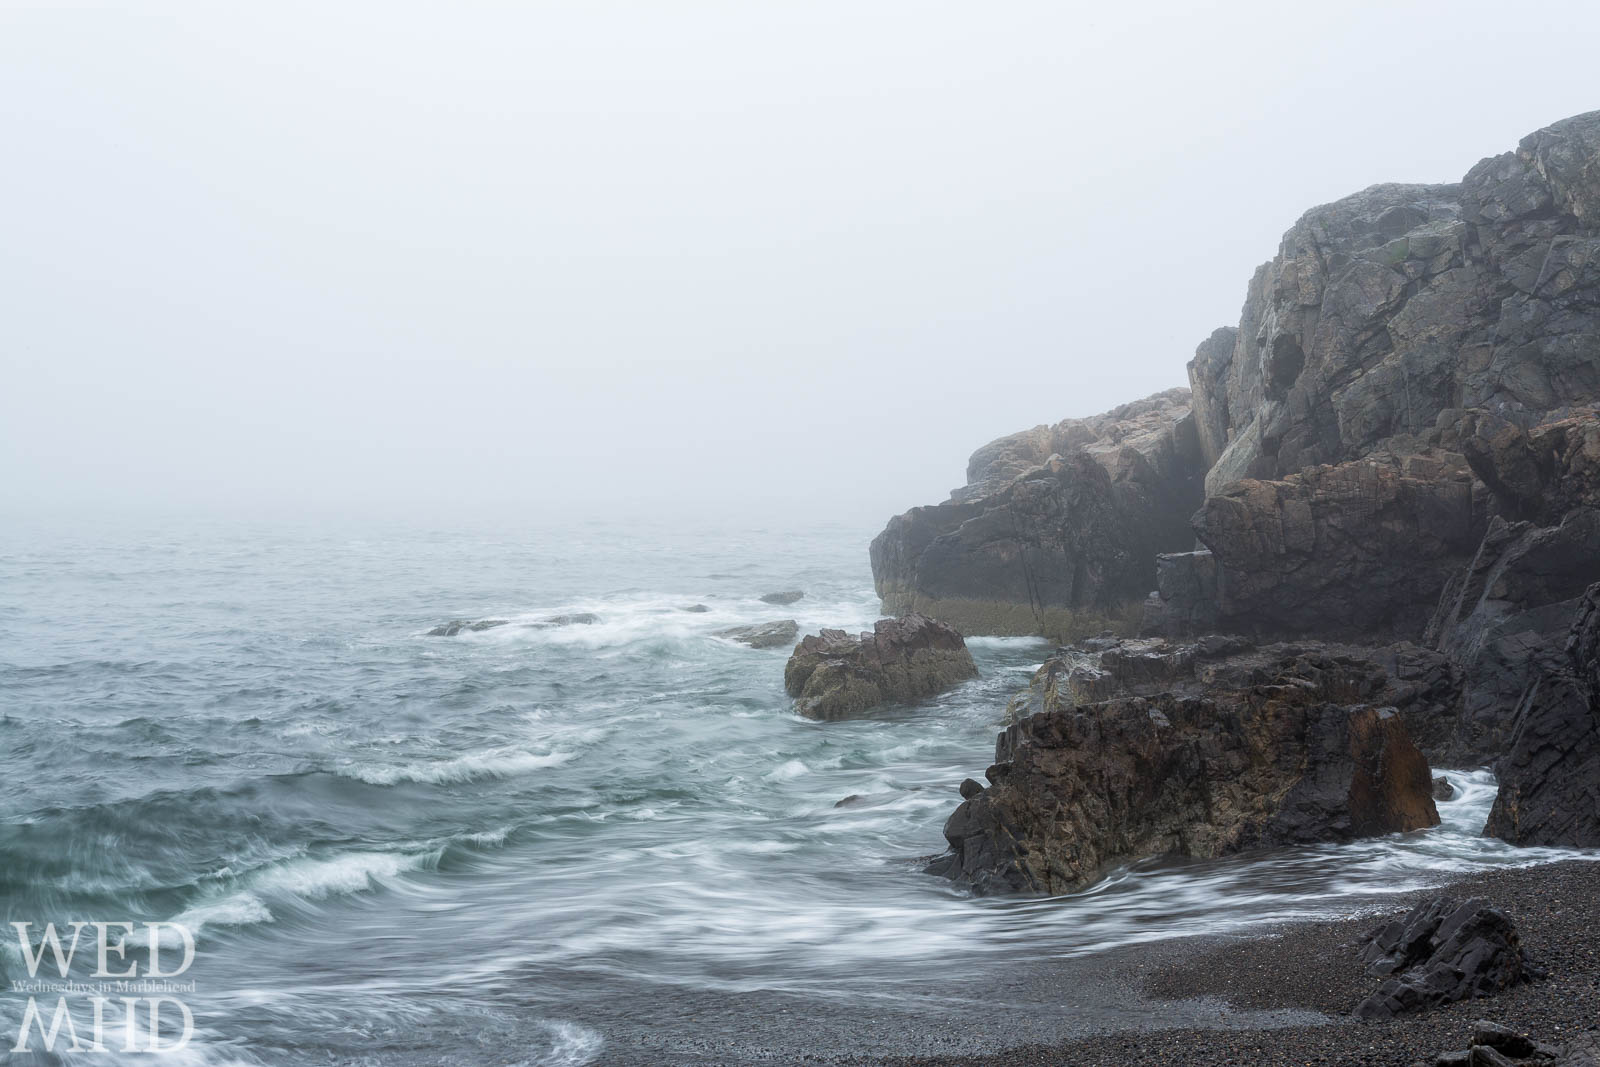 May often brings fog to Marblehead and there is nowhere better to explore those foggy days than at Castle Rock amidst its swirling waters